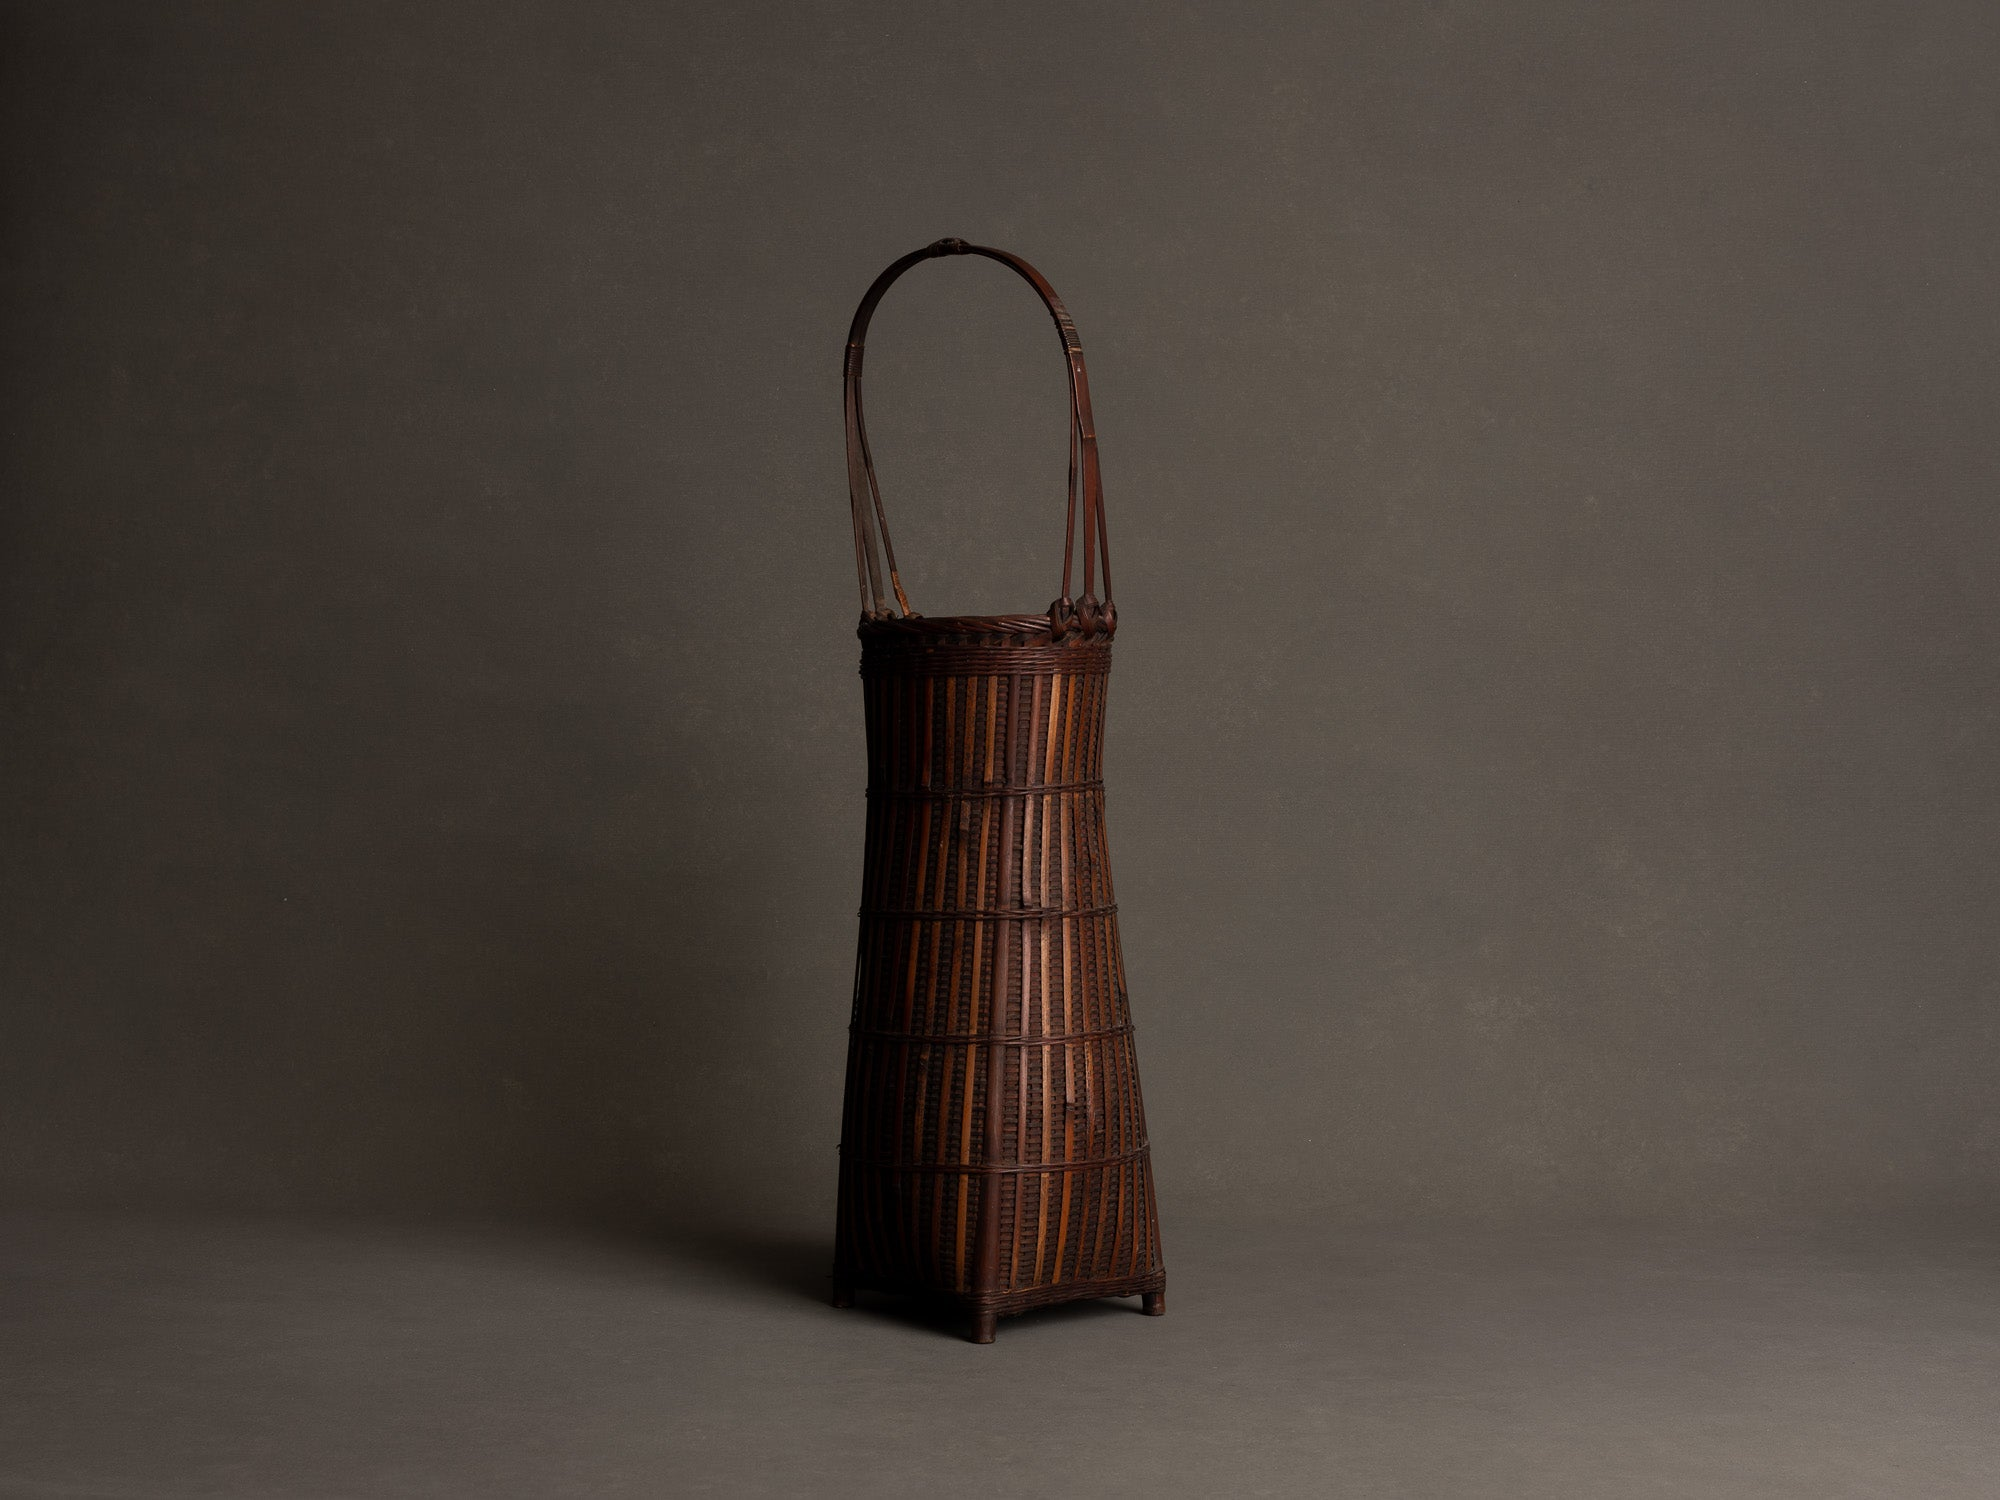 Hanakago, haut panier à anse pour l'ikebana, Japon (Ére Taishō / Début ère Shōwa)..Huge Hanakago Ikebana bamboo basket with wood handle, Japan (Taishō era / early Shōwa era)